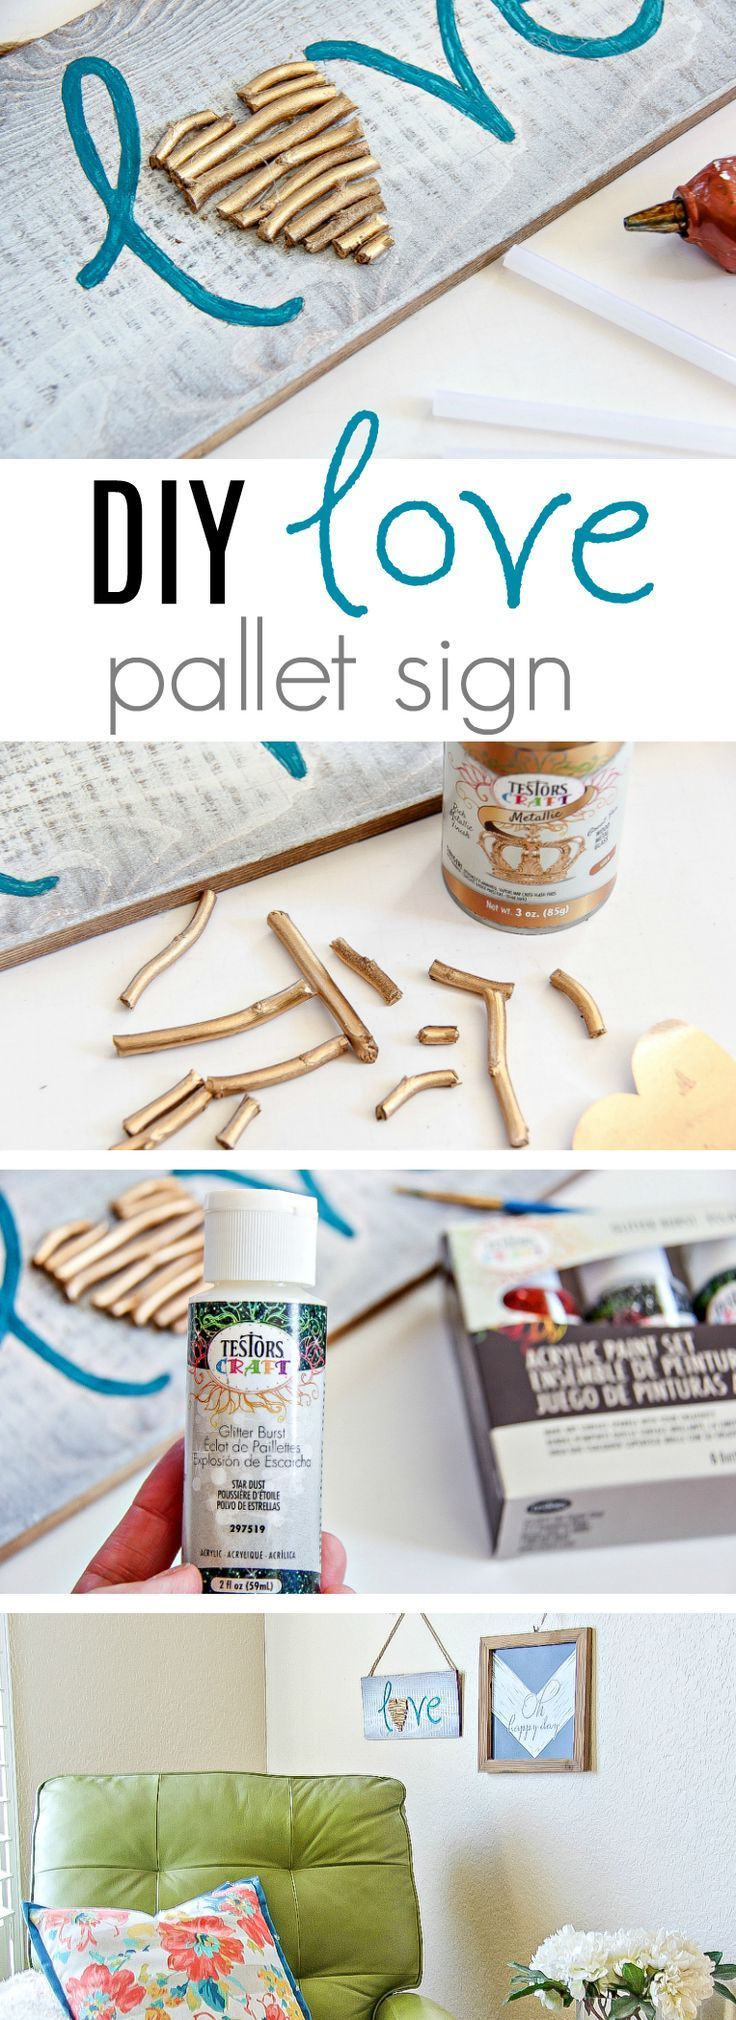 How To Make A Painted Love Sign Perfect For Valentine's Day - DIY Love Sign - St...